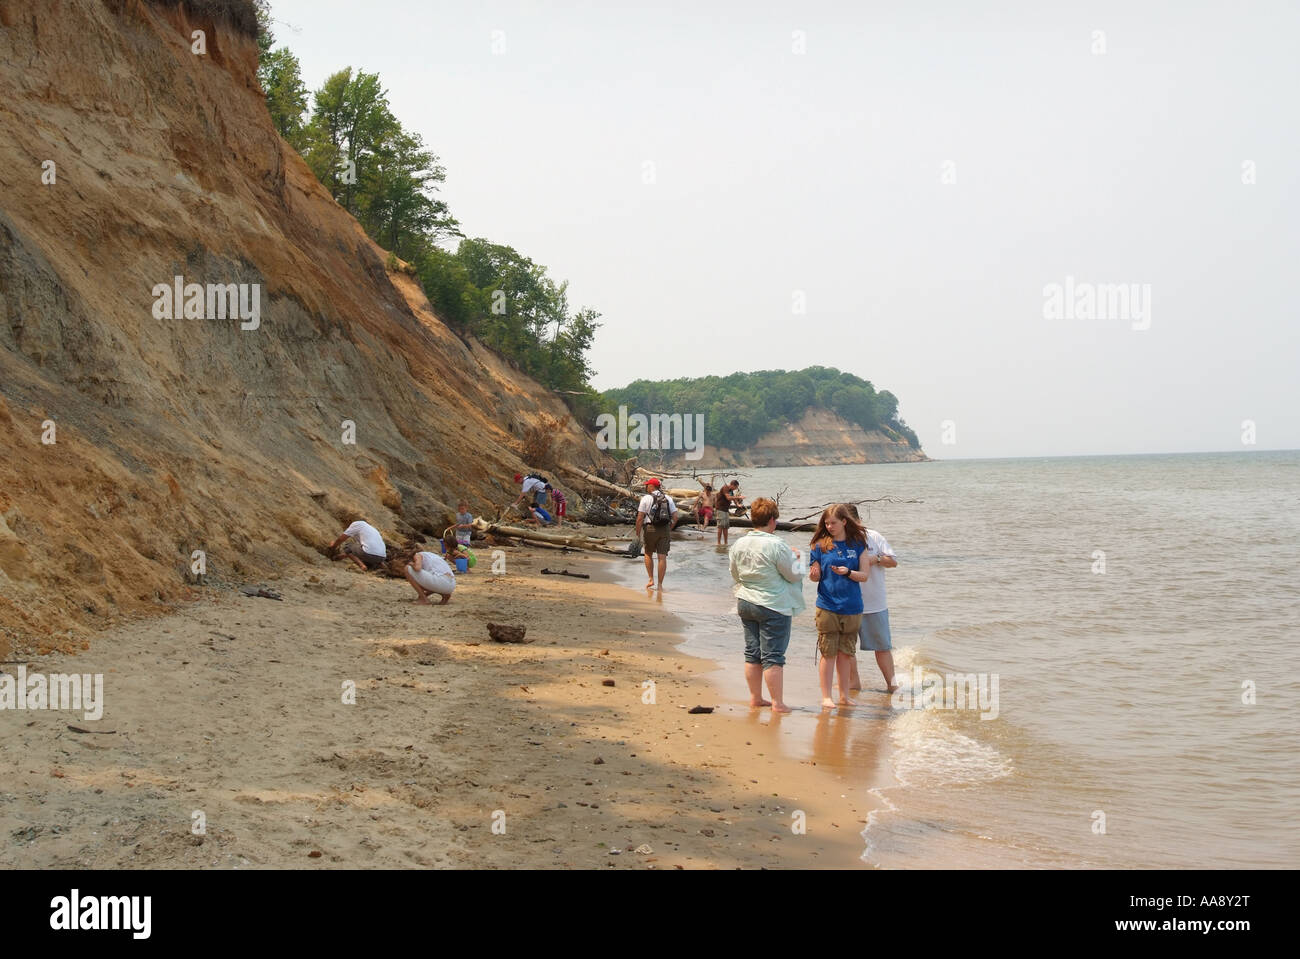 usa-maryland-calvert-cliffs-state-park-families-look-for-fossils-and-AA8Y2T.jpg